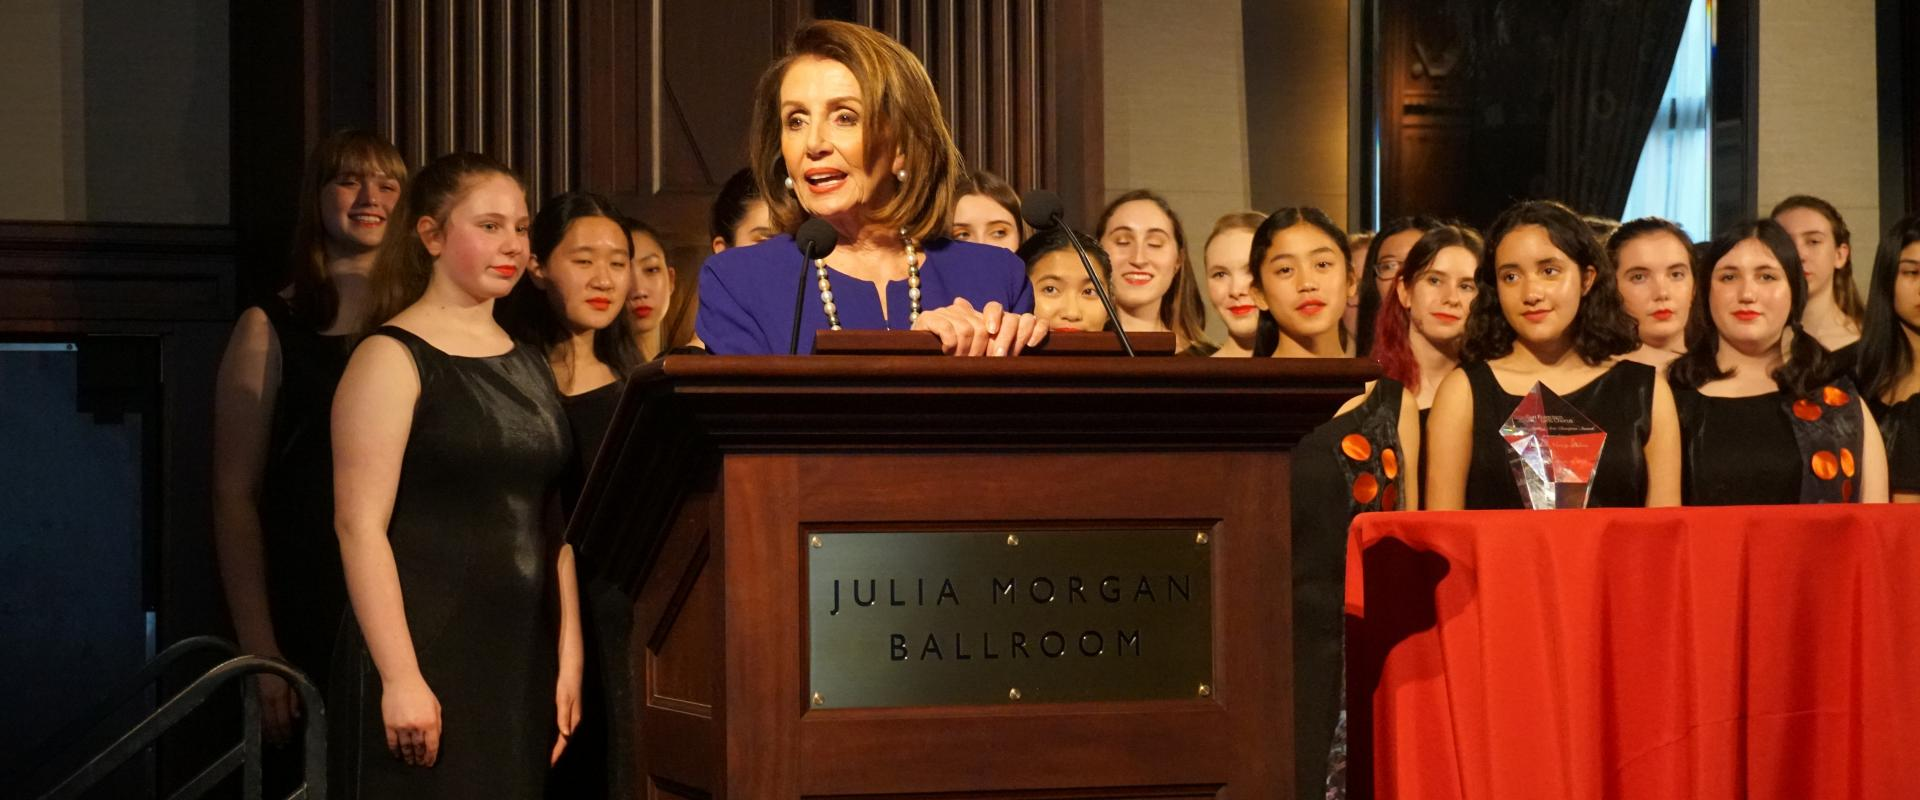 Congresswoman Pelosi was honored at the San Francisco Girls Chorus' 40th Anniversary Gala as the inaugural recipient of the Elizabeth Appling Arts Champion Award, named for the Girls Chorus founder. We must continue to champion music and the arts, as it e